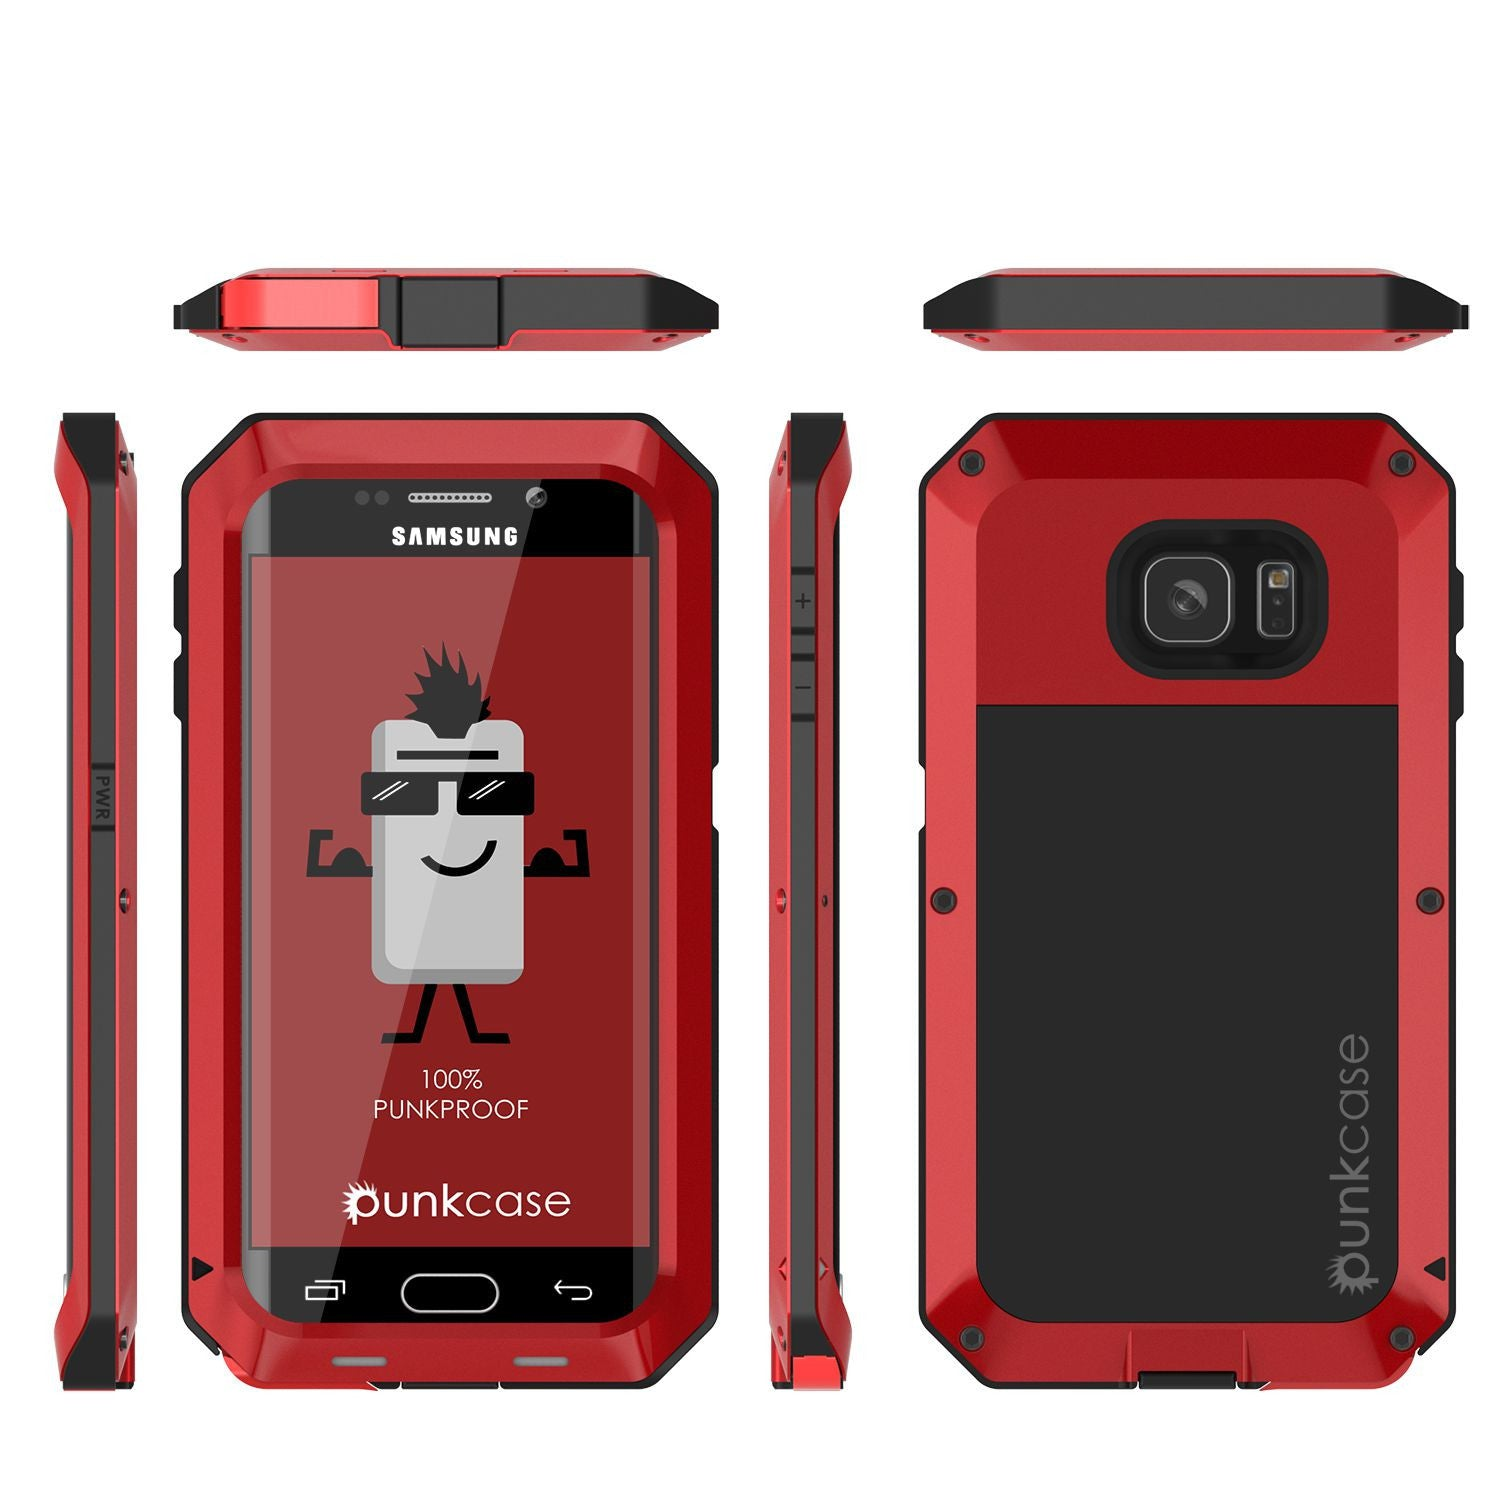 PUNKCASE - Metallic Series Shockproof Armor Case for Samsung S7 Edge | Red